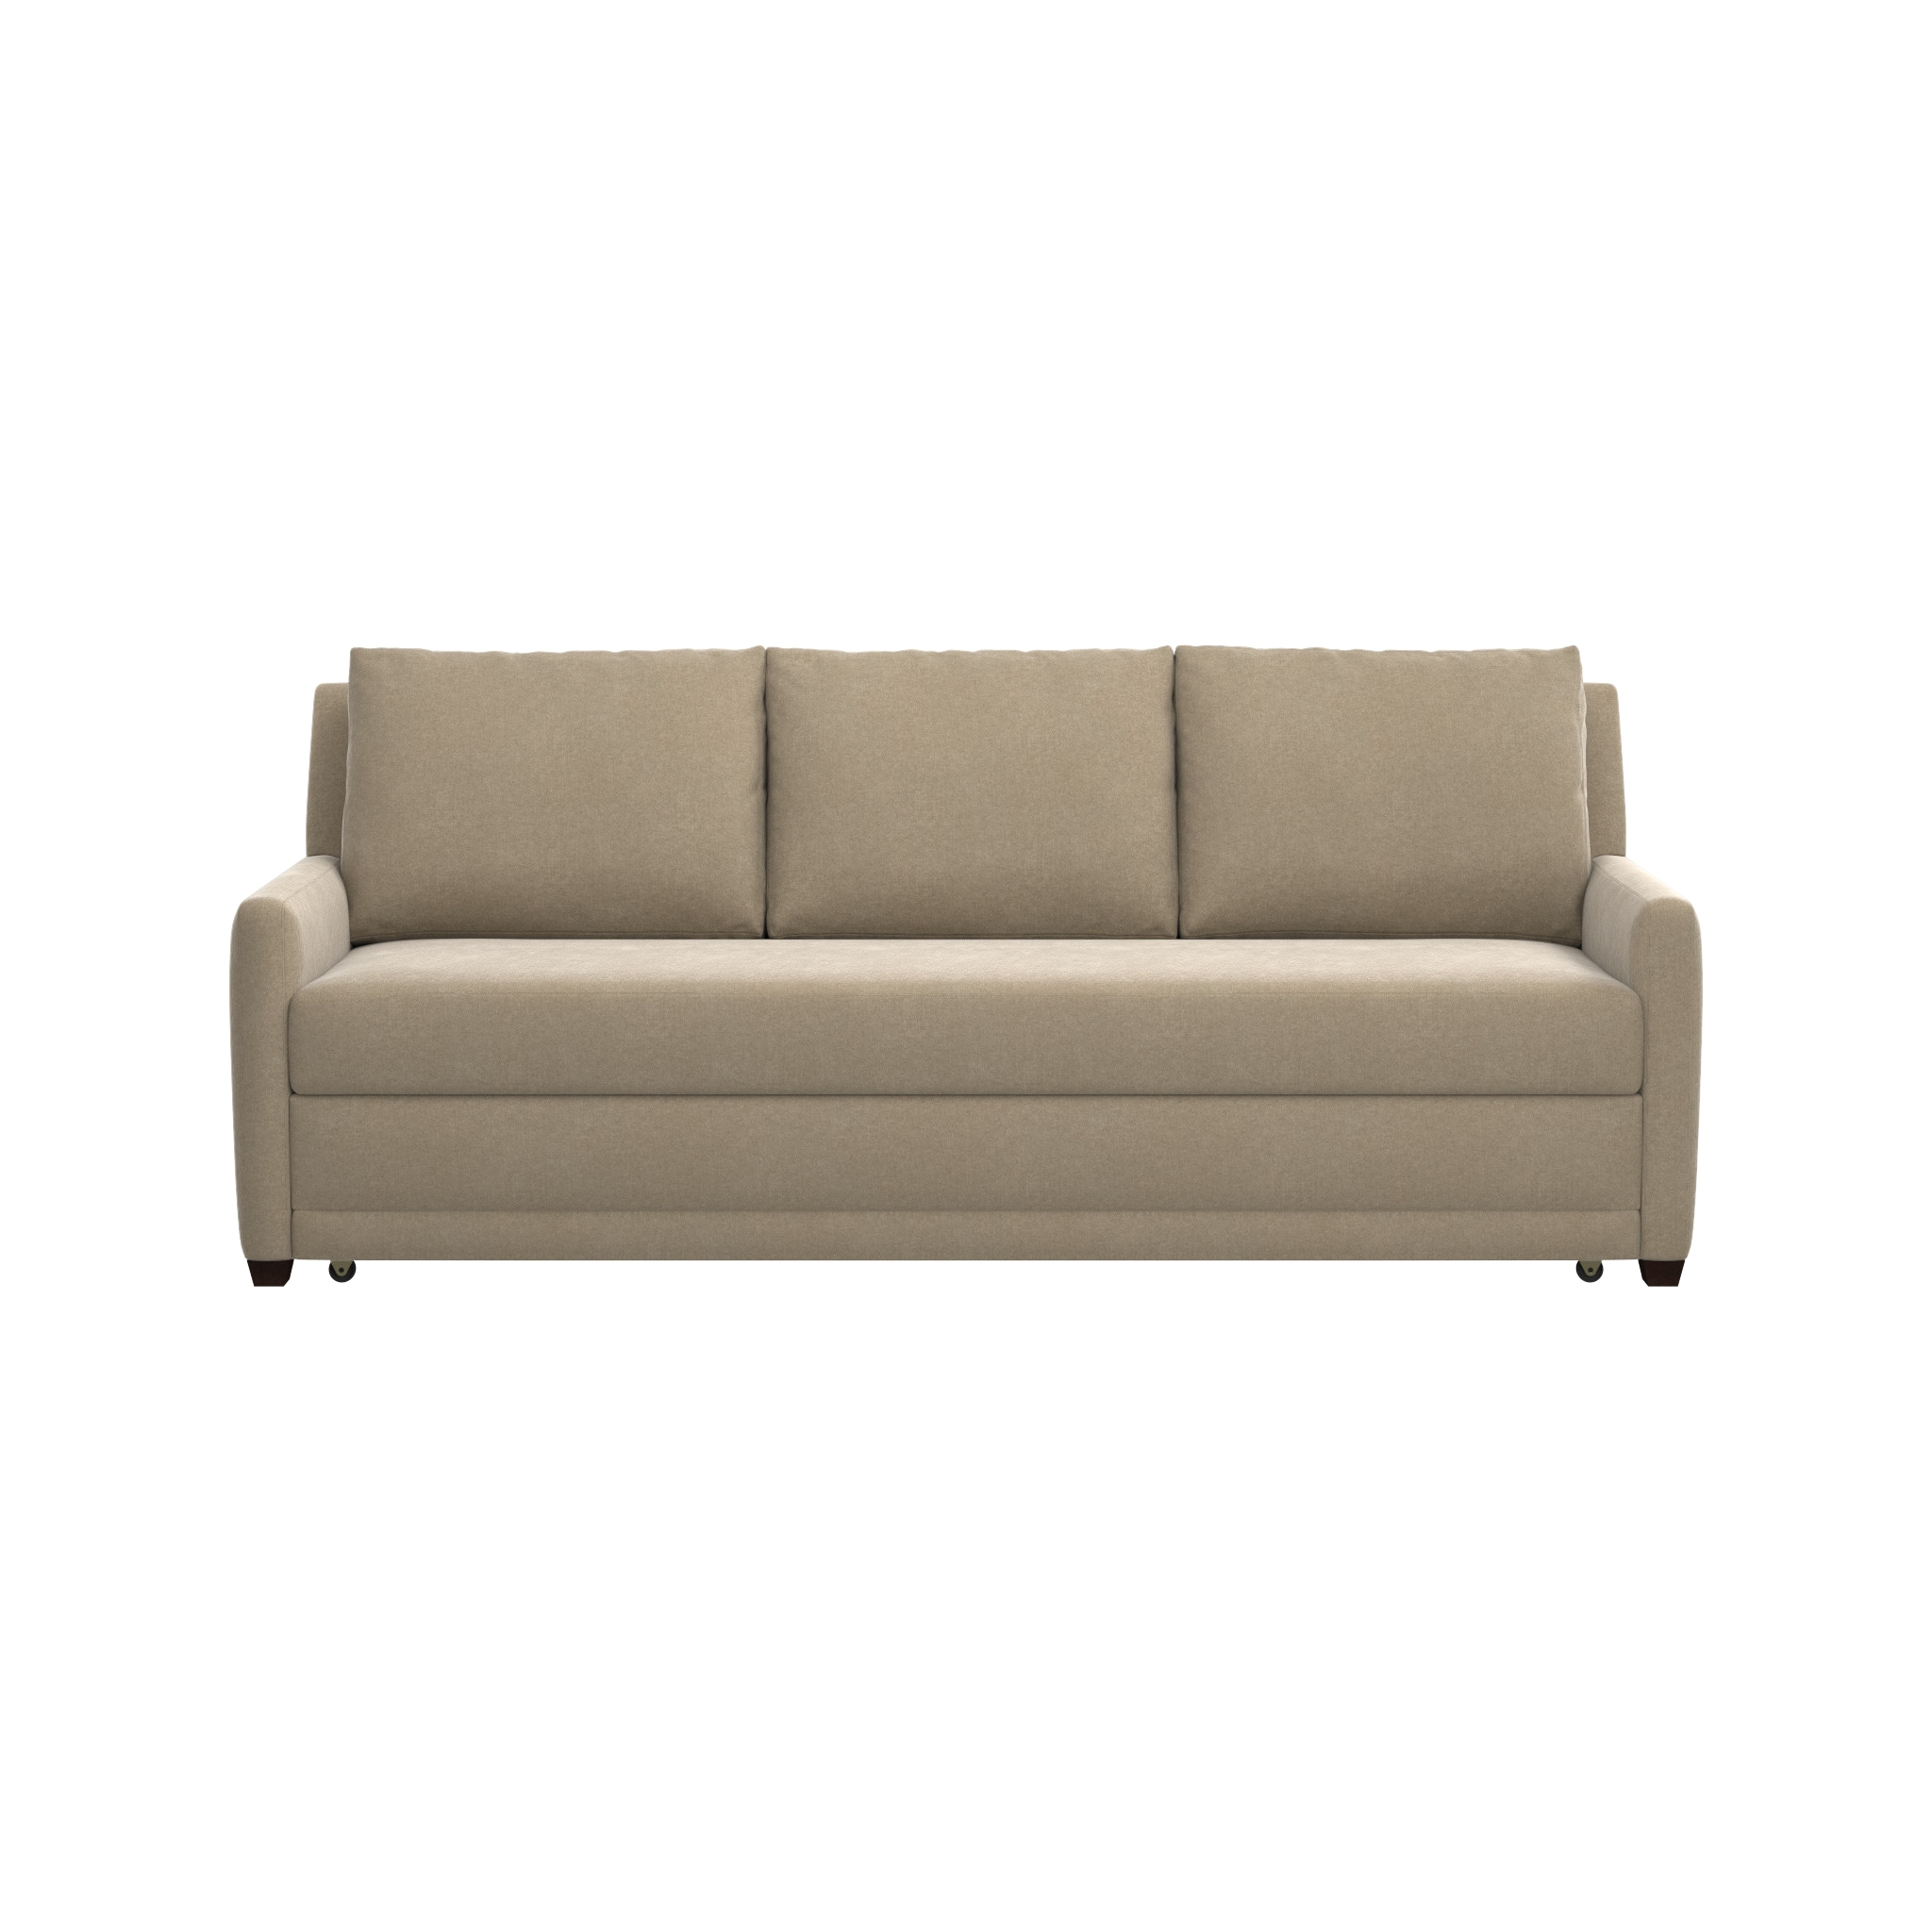 Reston Queen Sleeper Sofa | Crate And Barrel Pertaining To Crate And Barrel Sofa Sleepers (Image 15 of 20)